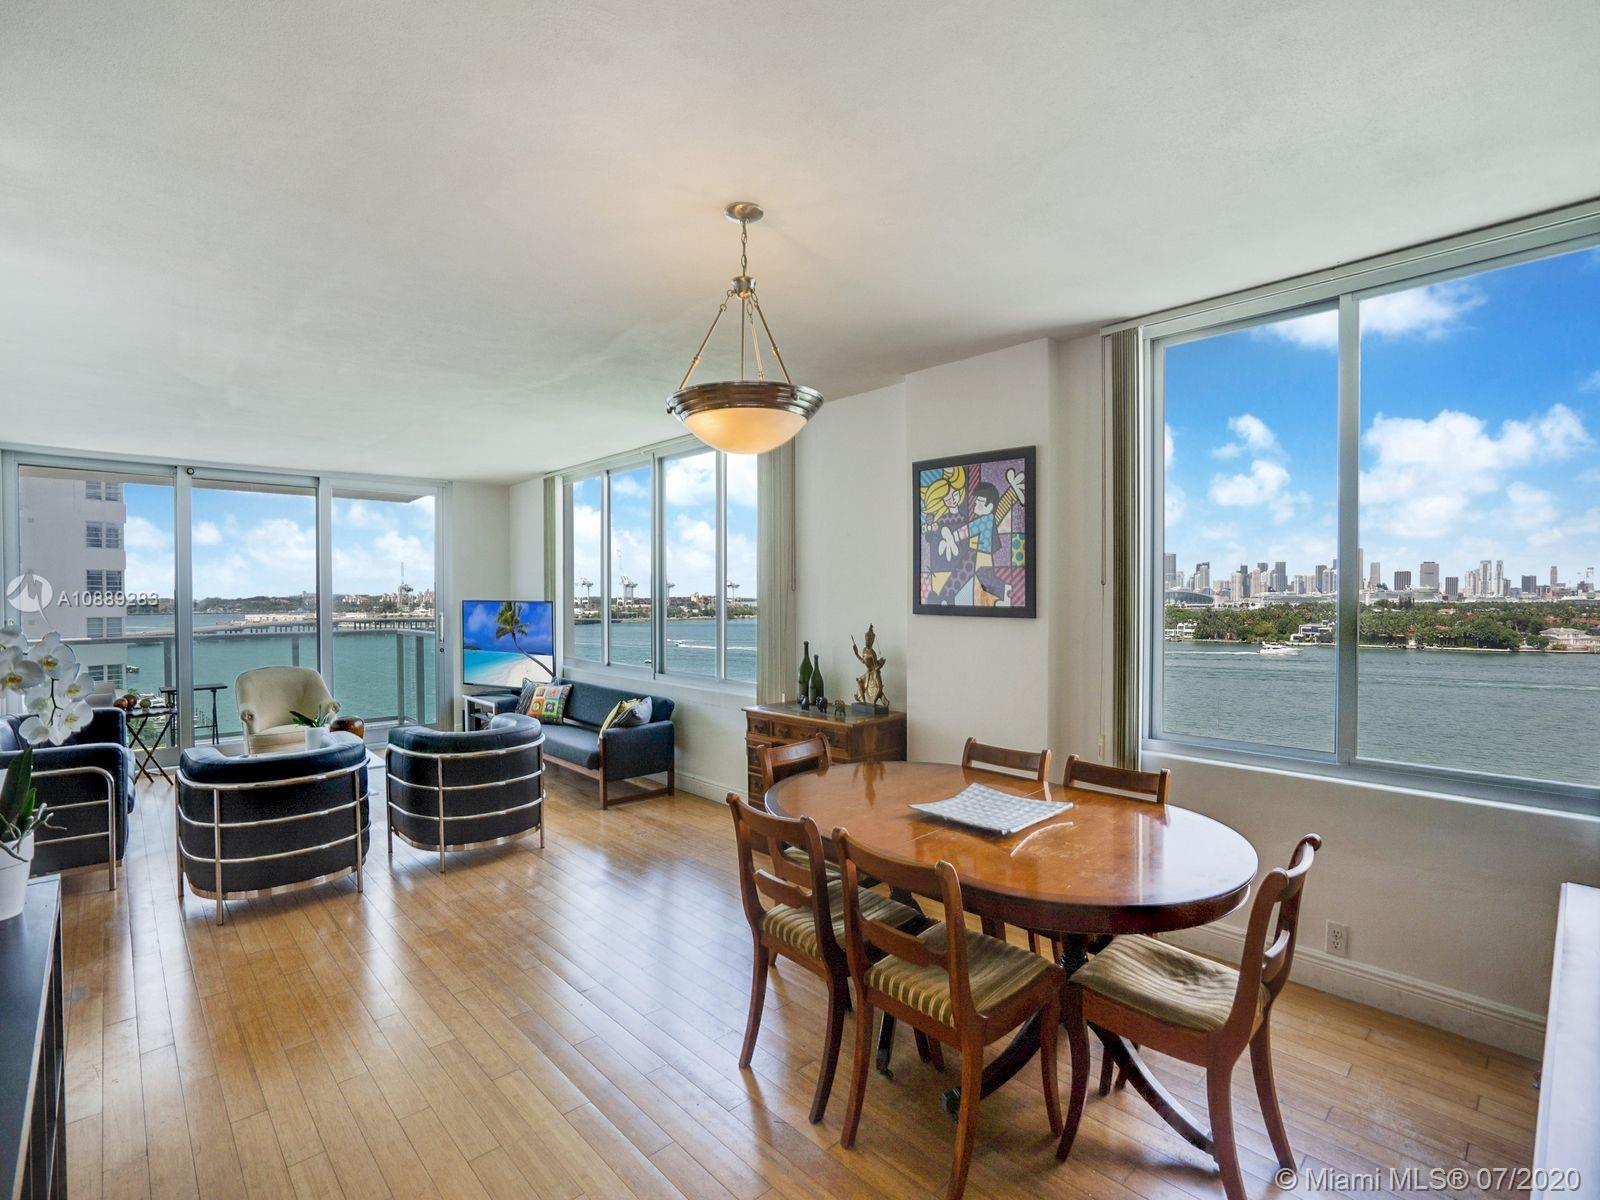 1000 West Ave # 1125, Miami Beach, Florida 33139, 2 Bedrooms Bedrooms, ,2 BathroomsBathrooms,Residential,For Sale,1000 West Ave # 1125,A10889283